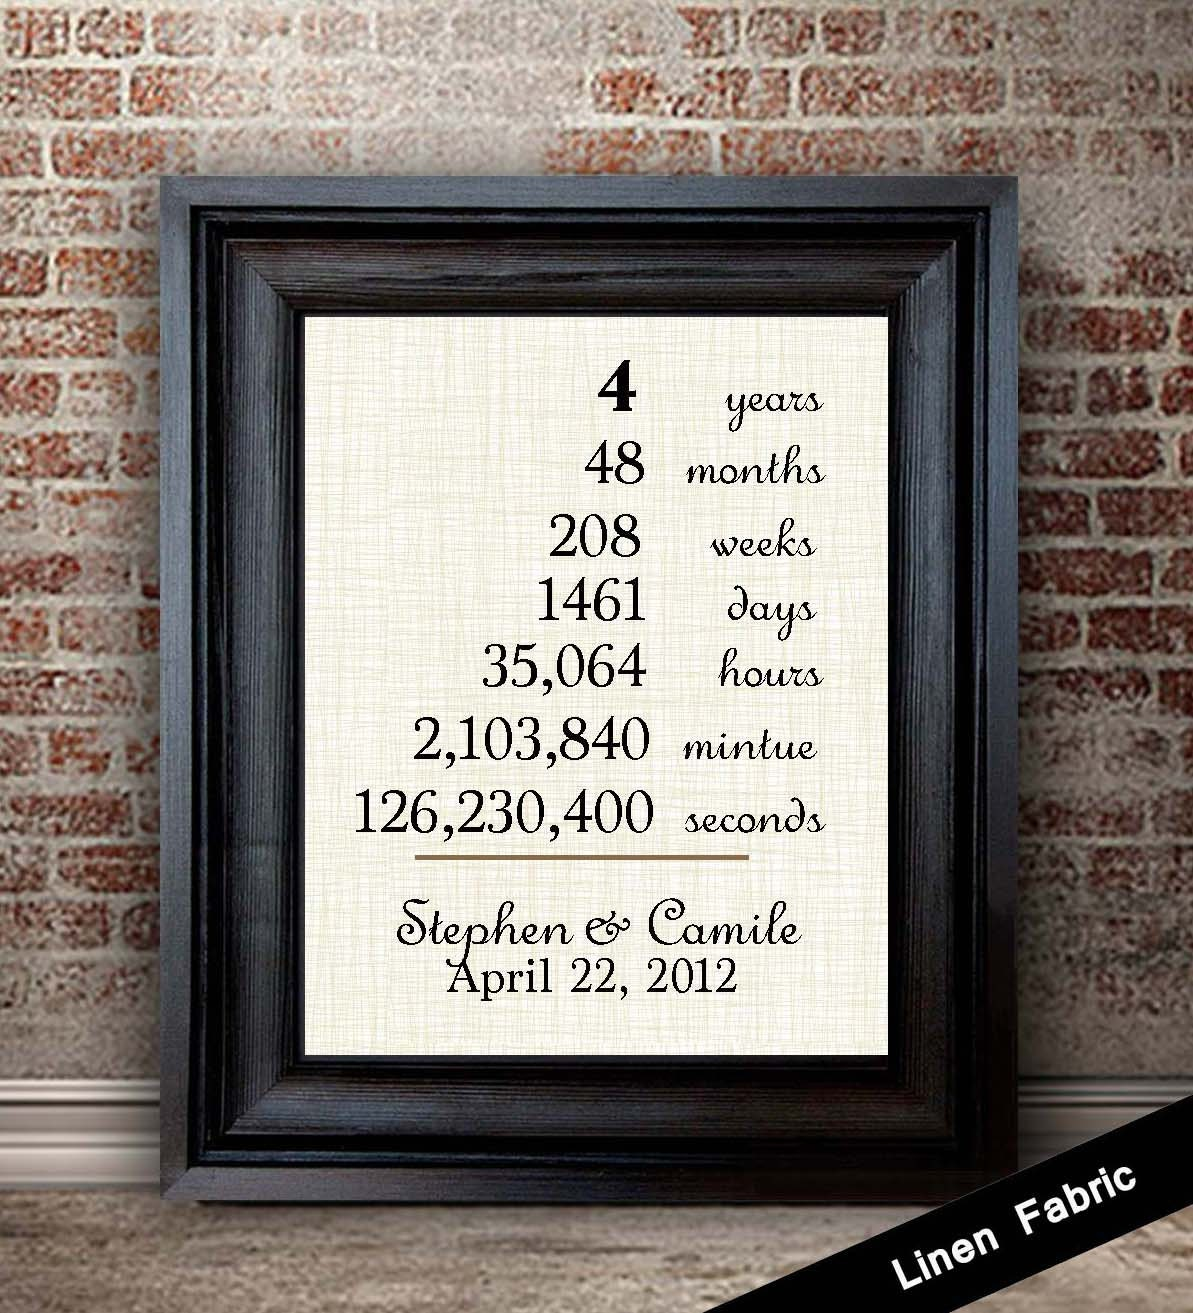 4th anniversary gift for wife linen anniversary gift 4 What is the 4 year wedding anniversary gift